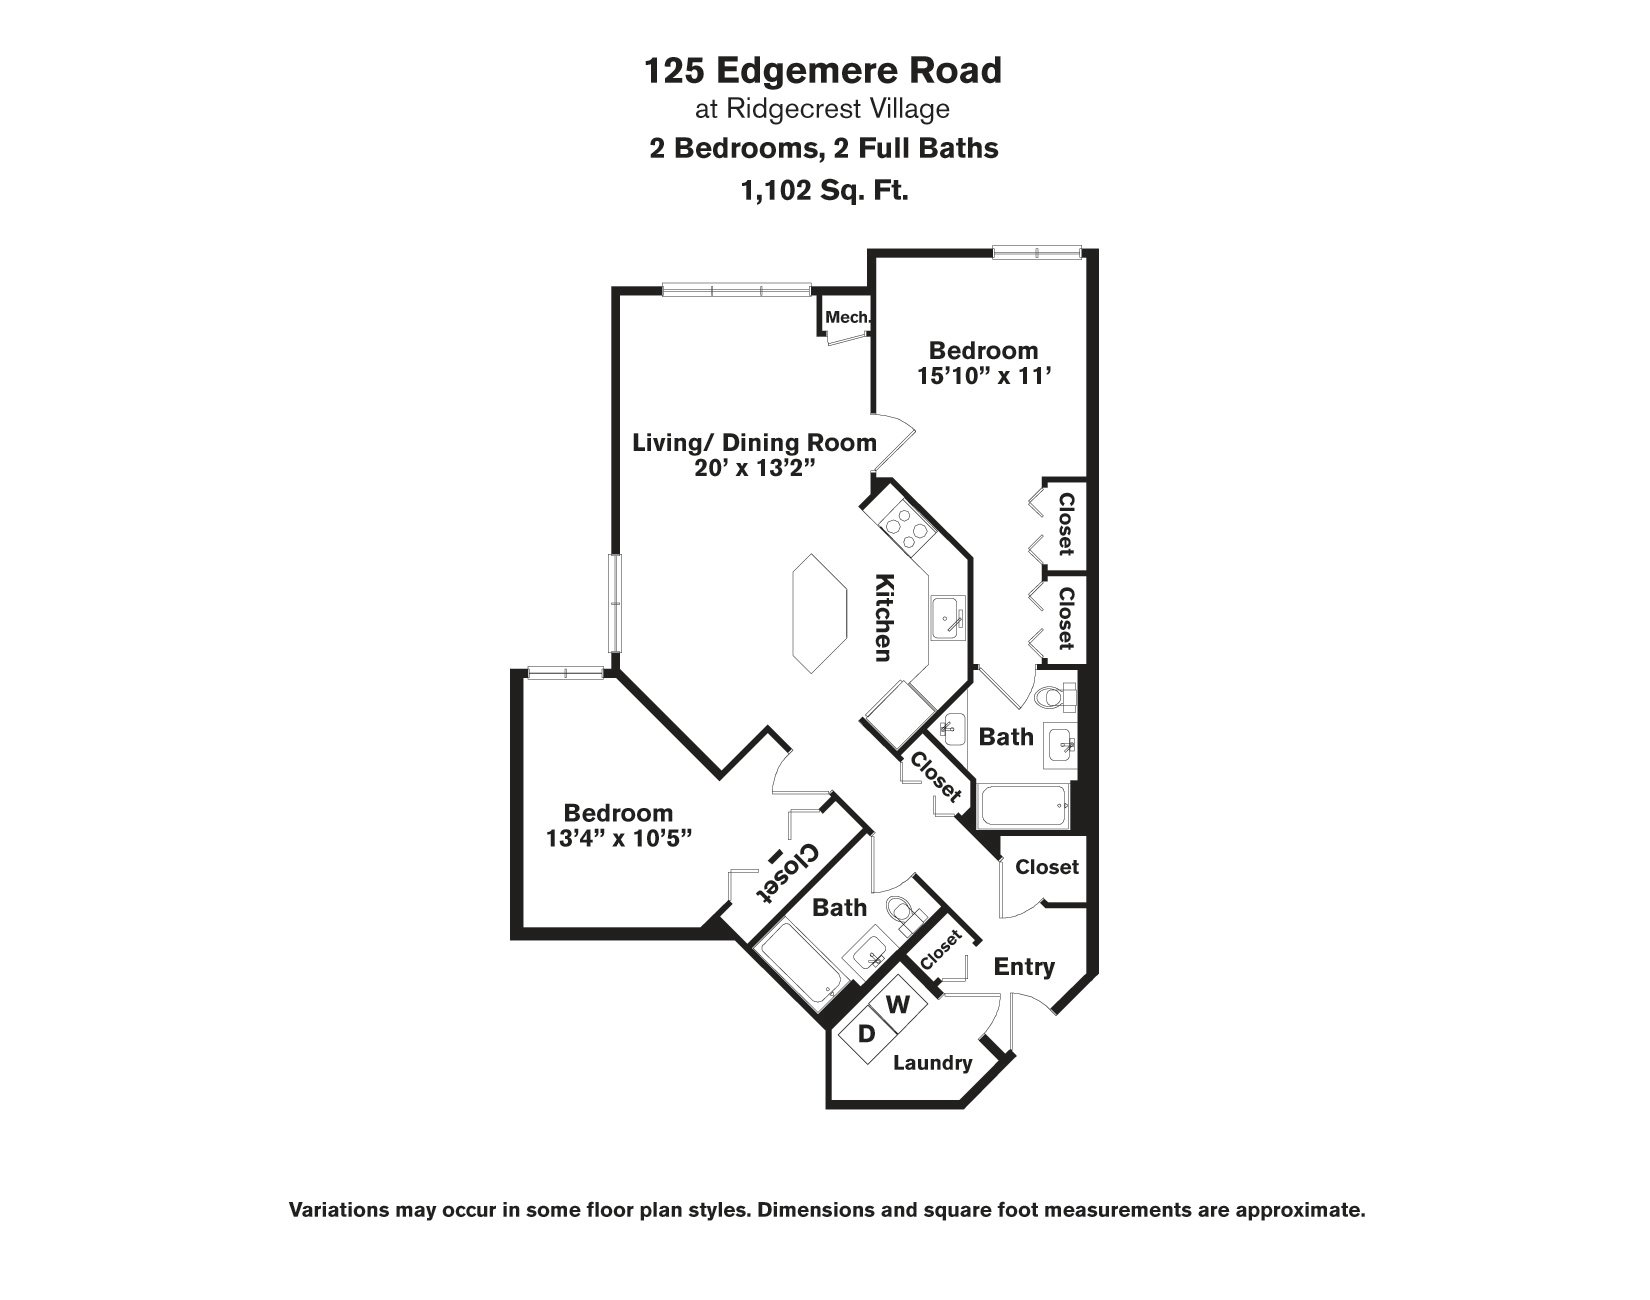 Click to view Floor plan 2 BR - Edgemere image 2